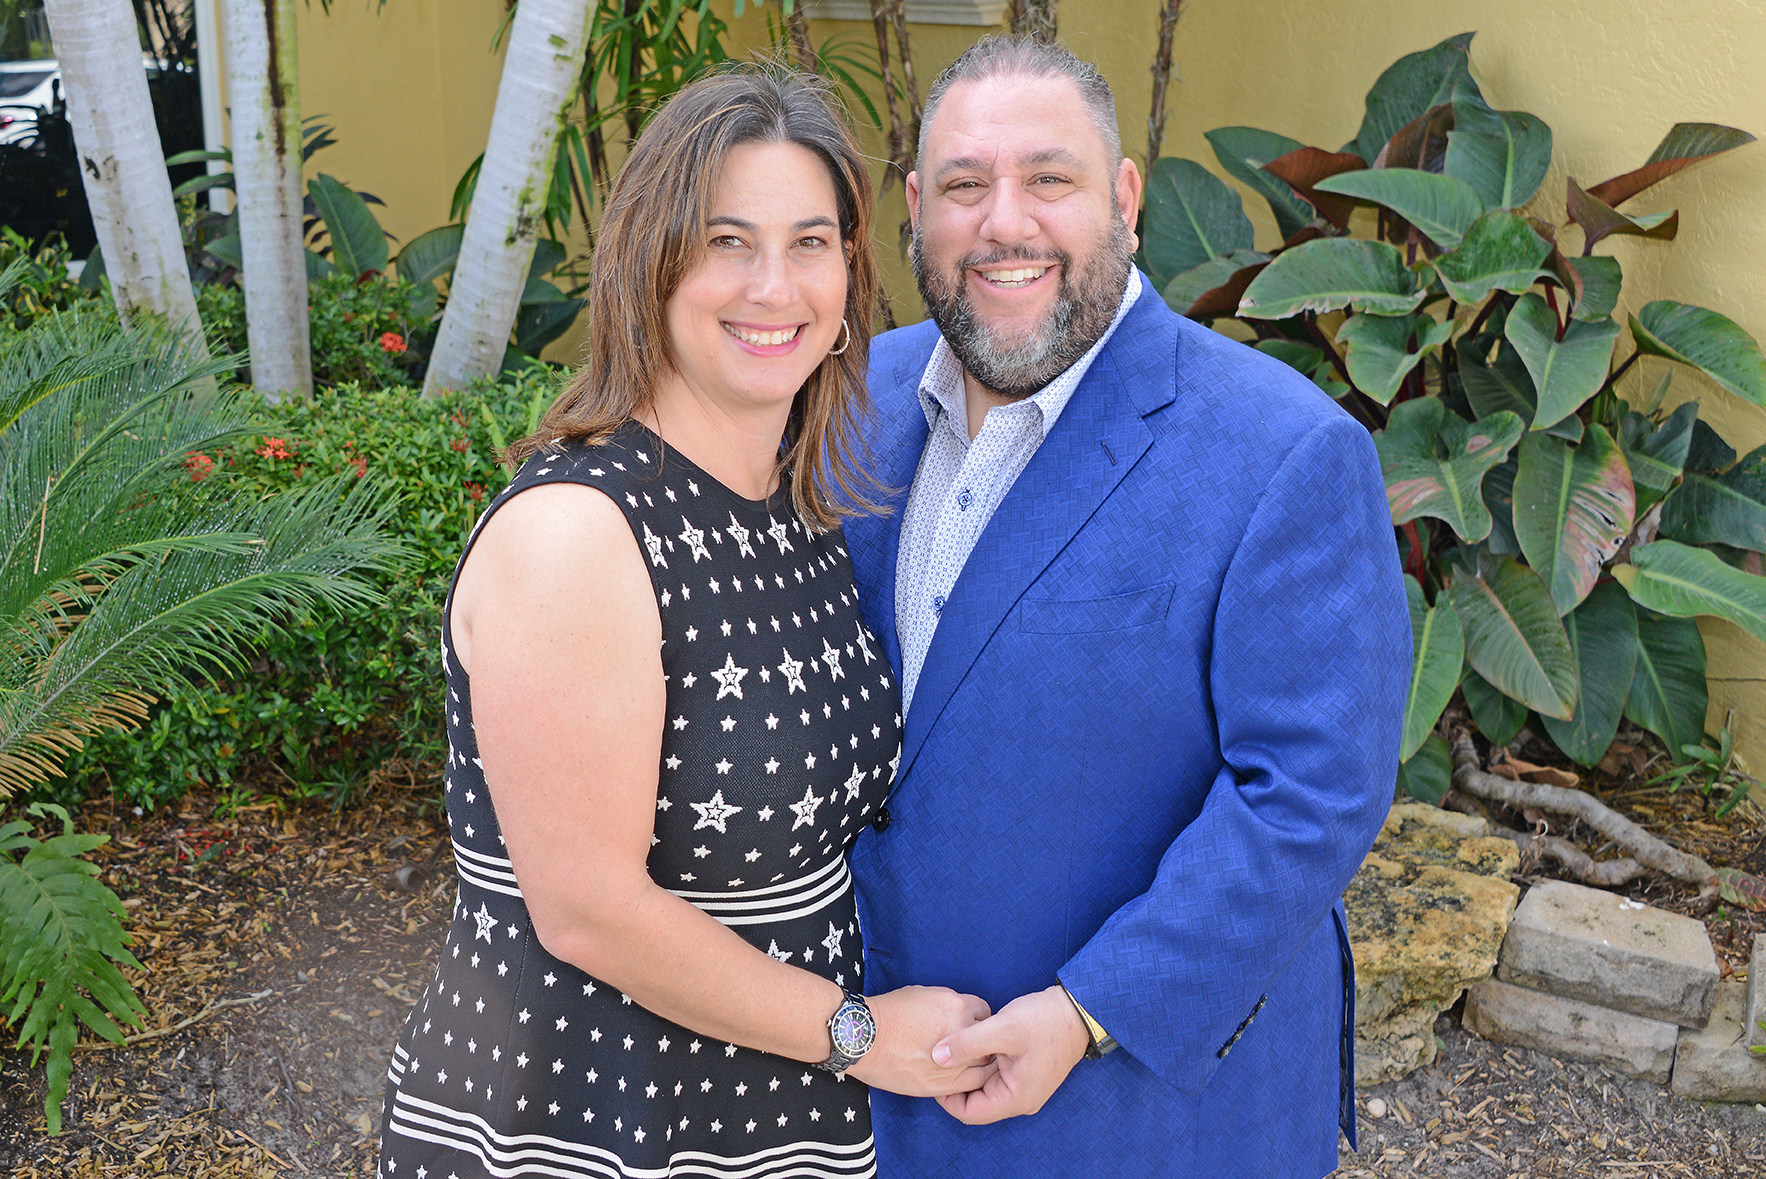 Boca Raton Residents Wendy & Matthew H. Maschler to receive the Israel71 Award as Honored Guests at the 2019 Israel Bonds International Prime Minister's Club Dinner